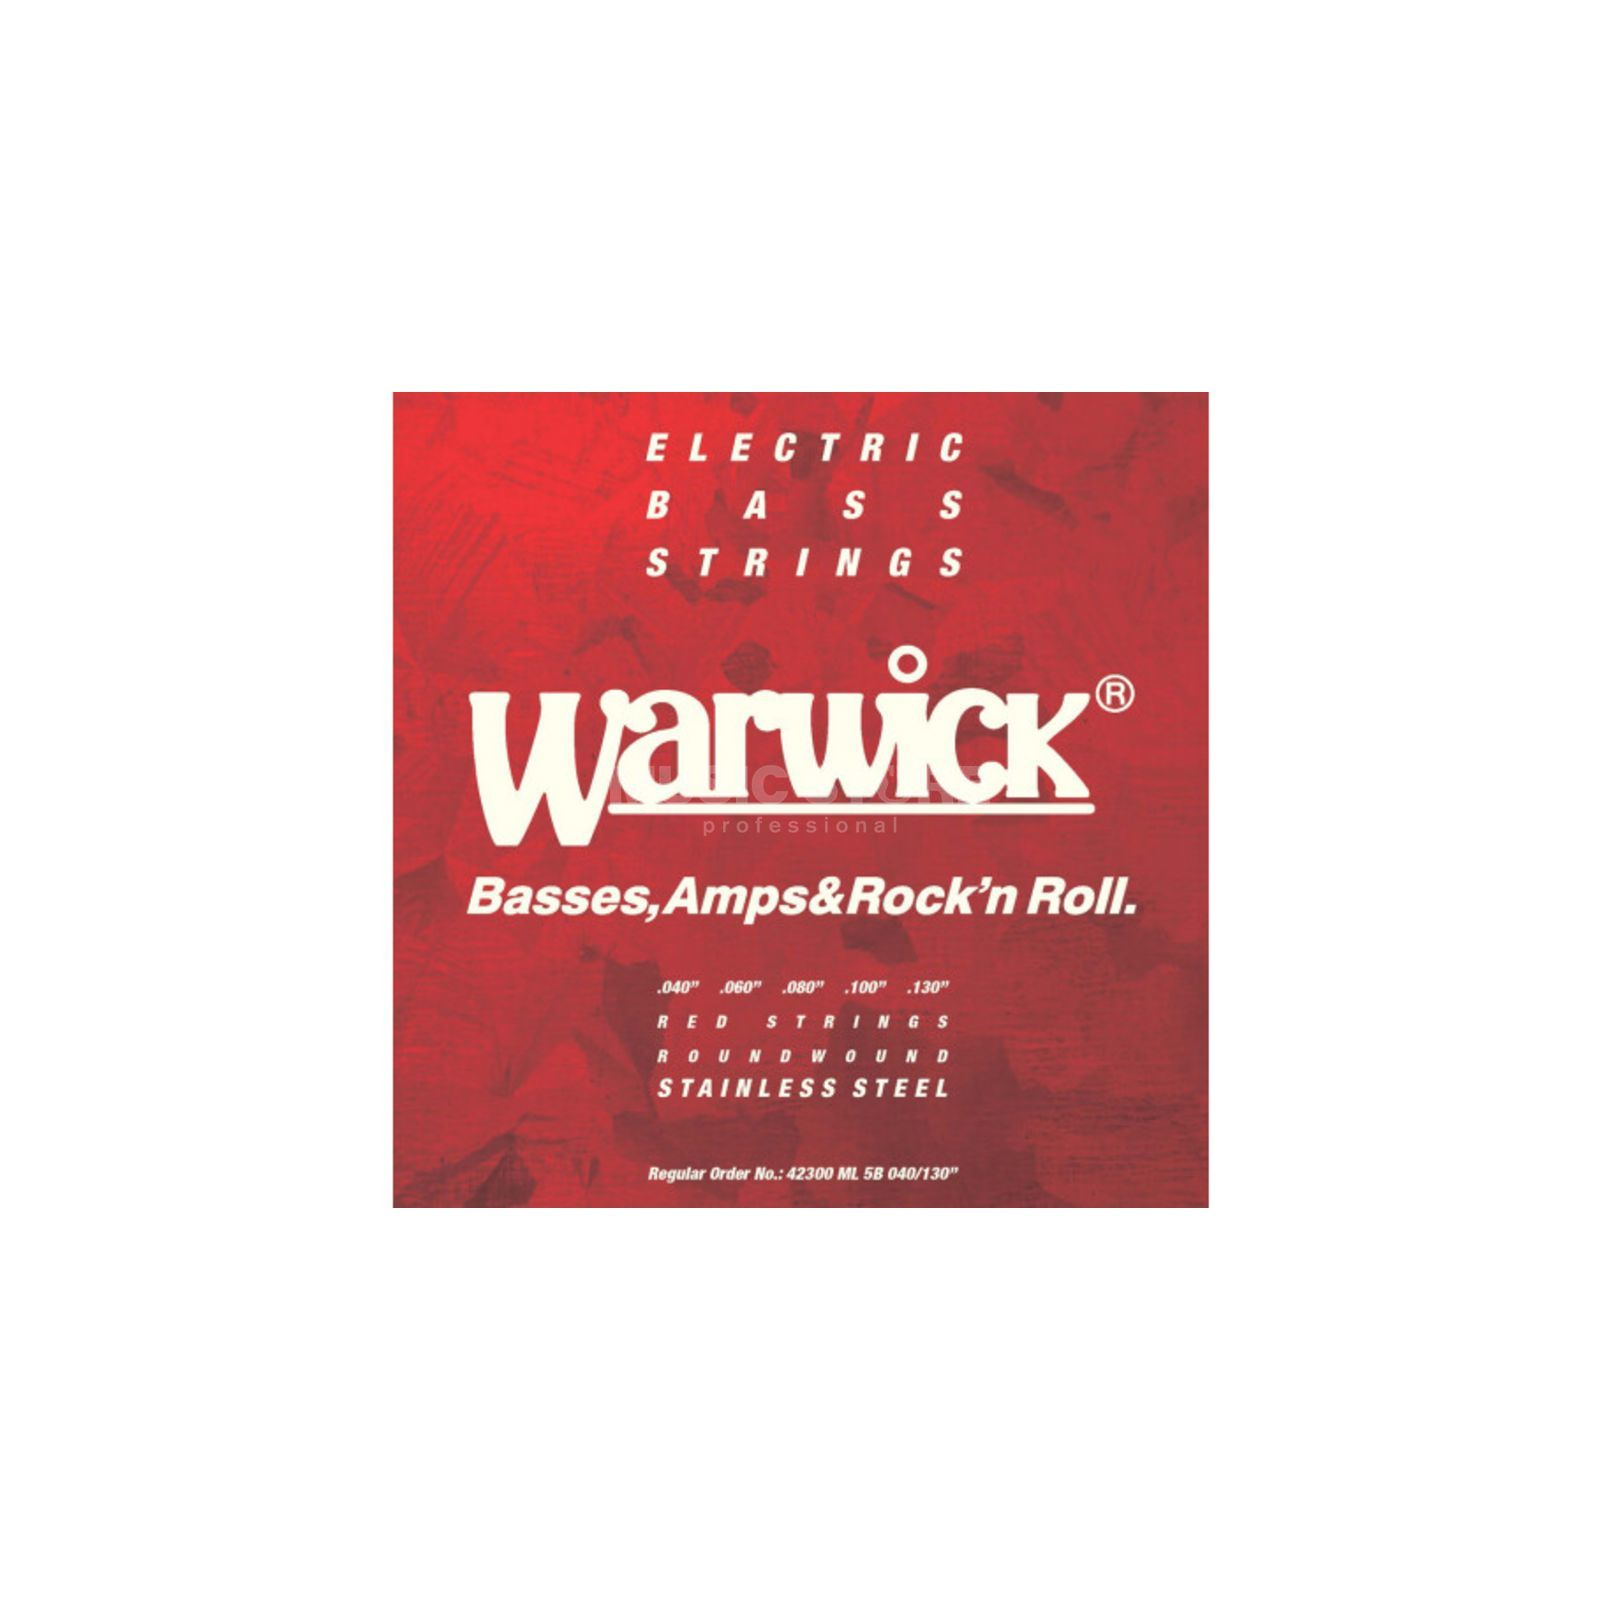 Warwick Bass Strings, 40-130, Red 5 String Set, Stainless Steel Product Image